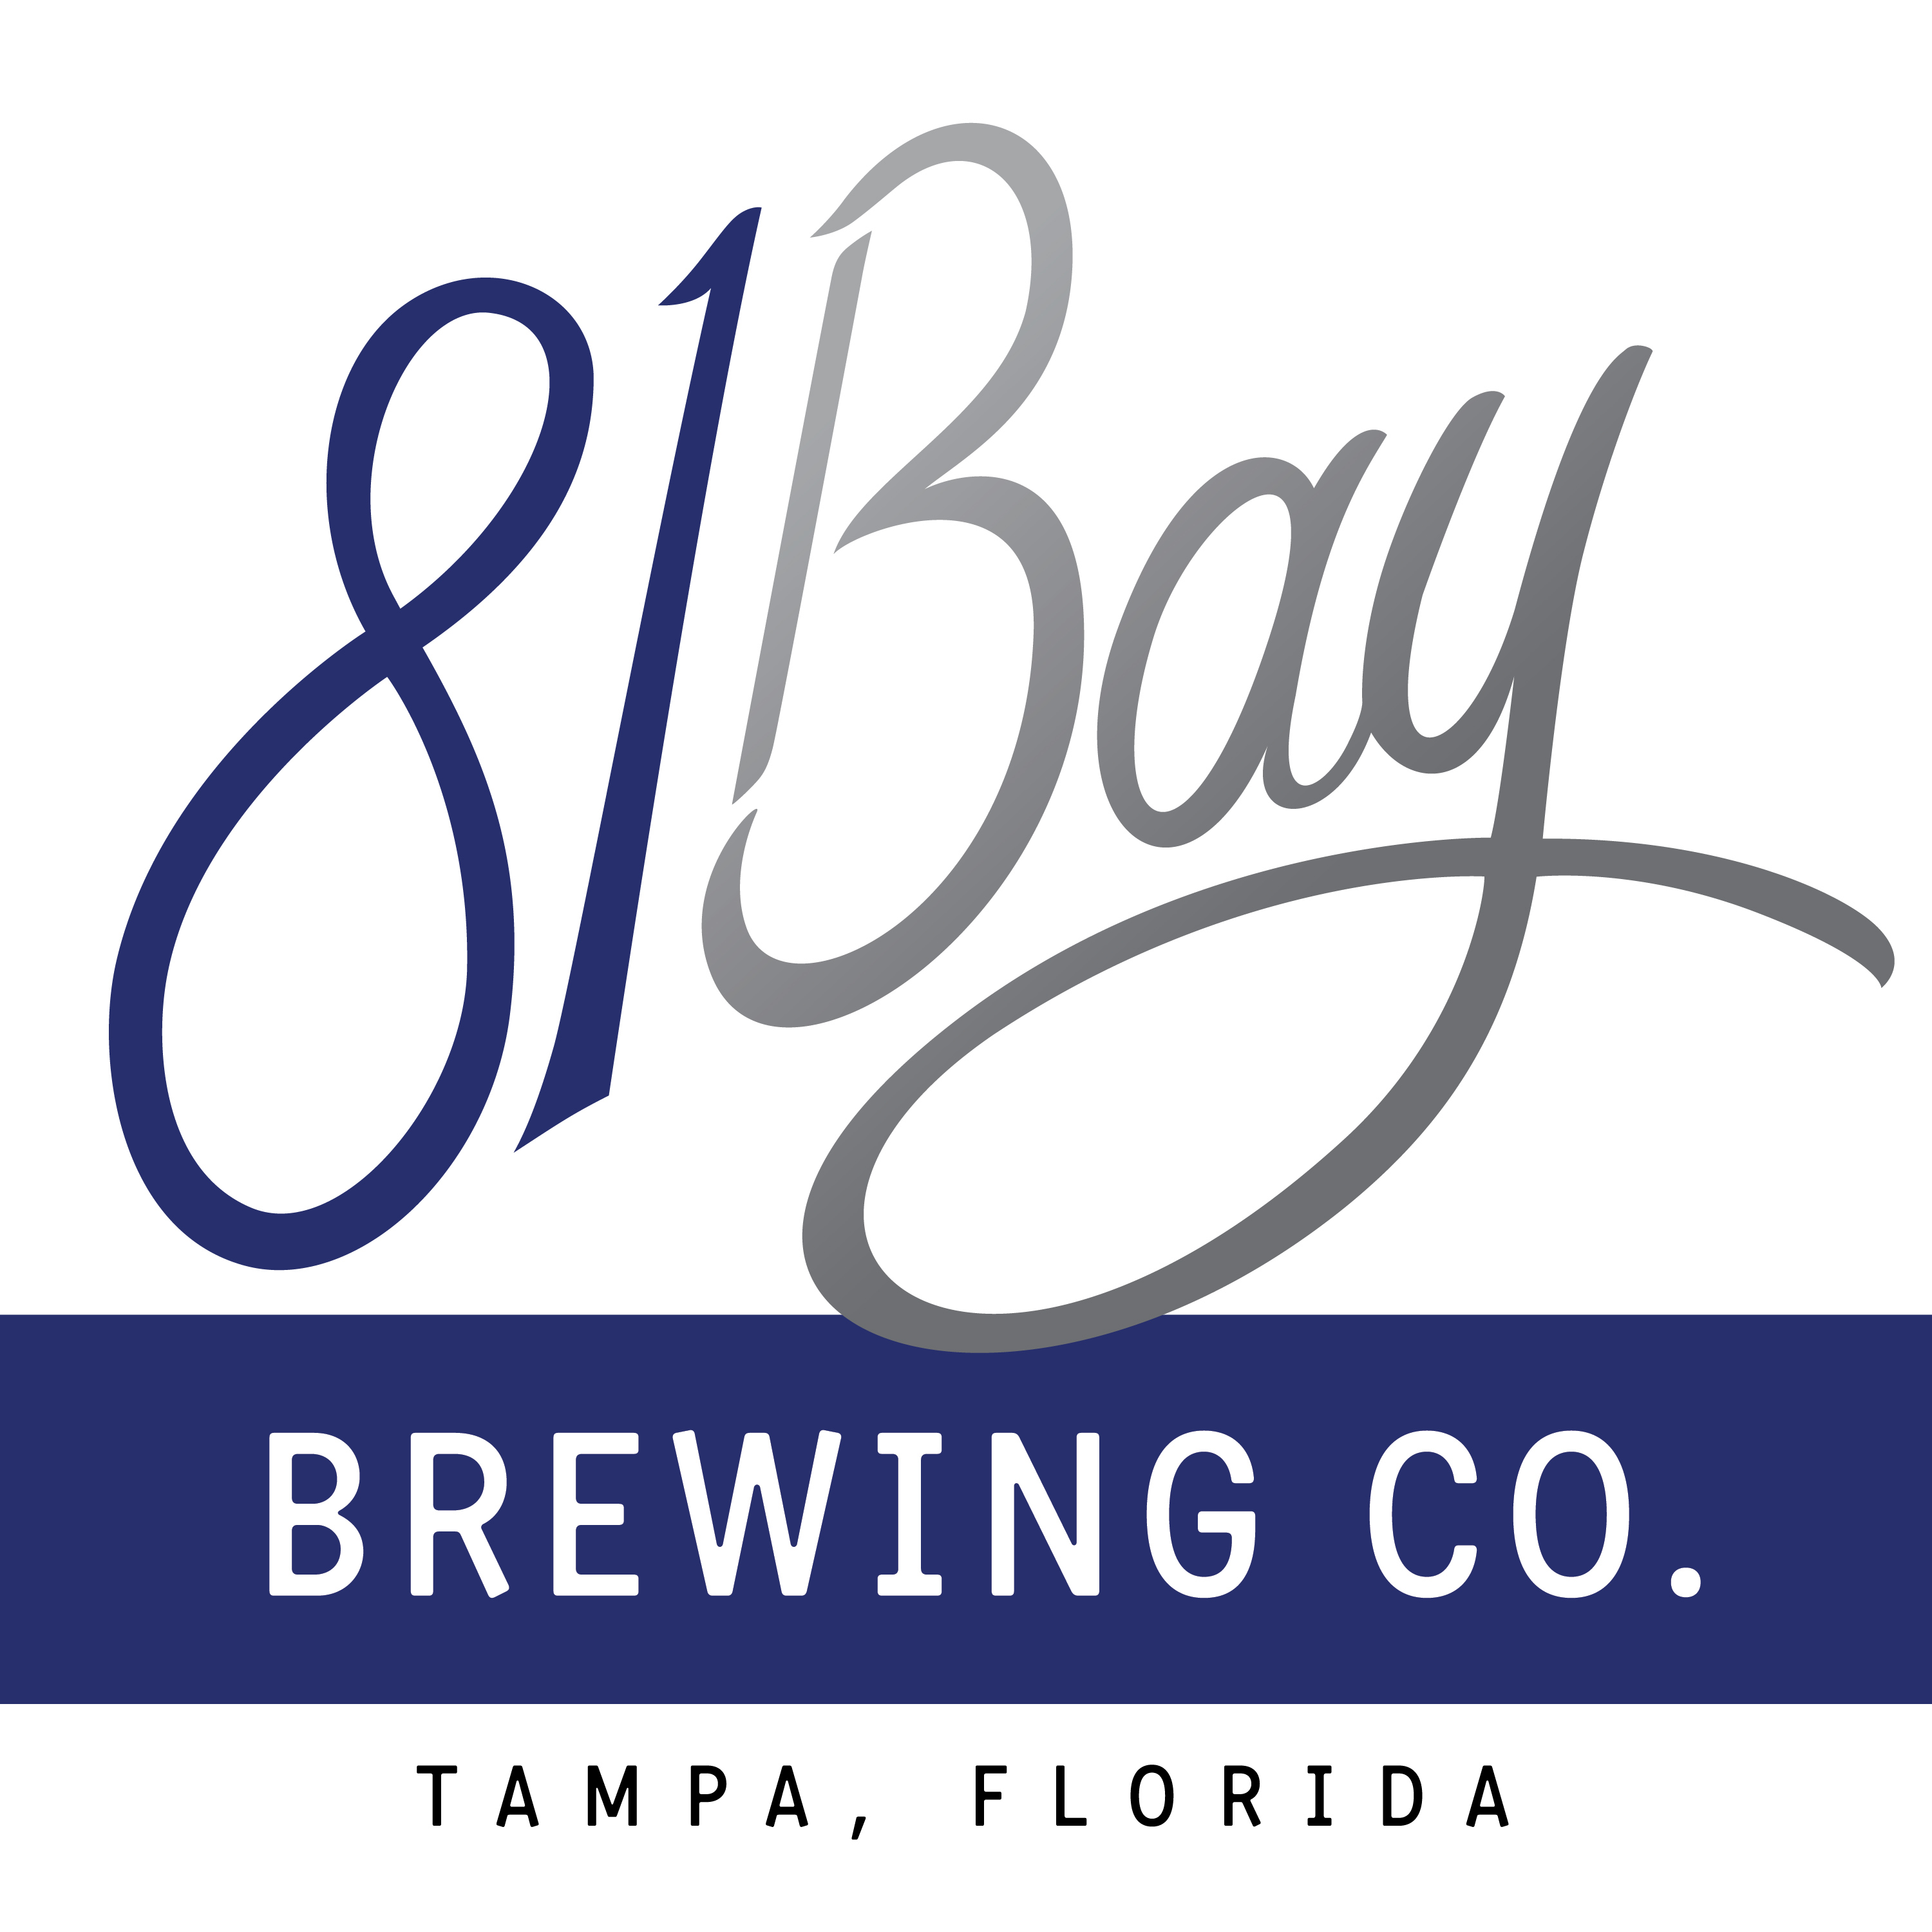 81Bay Brewing Co